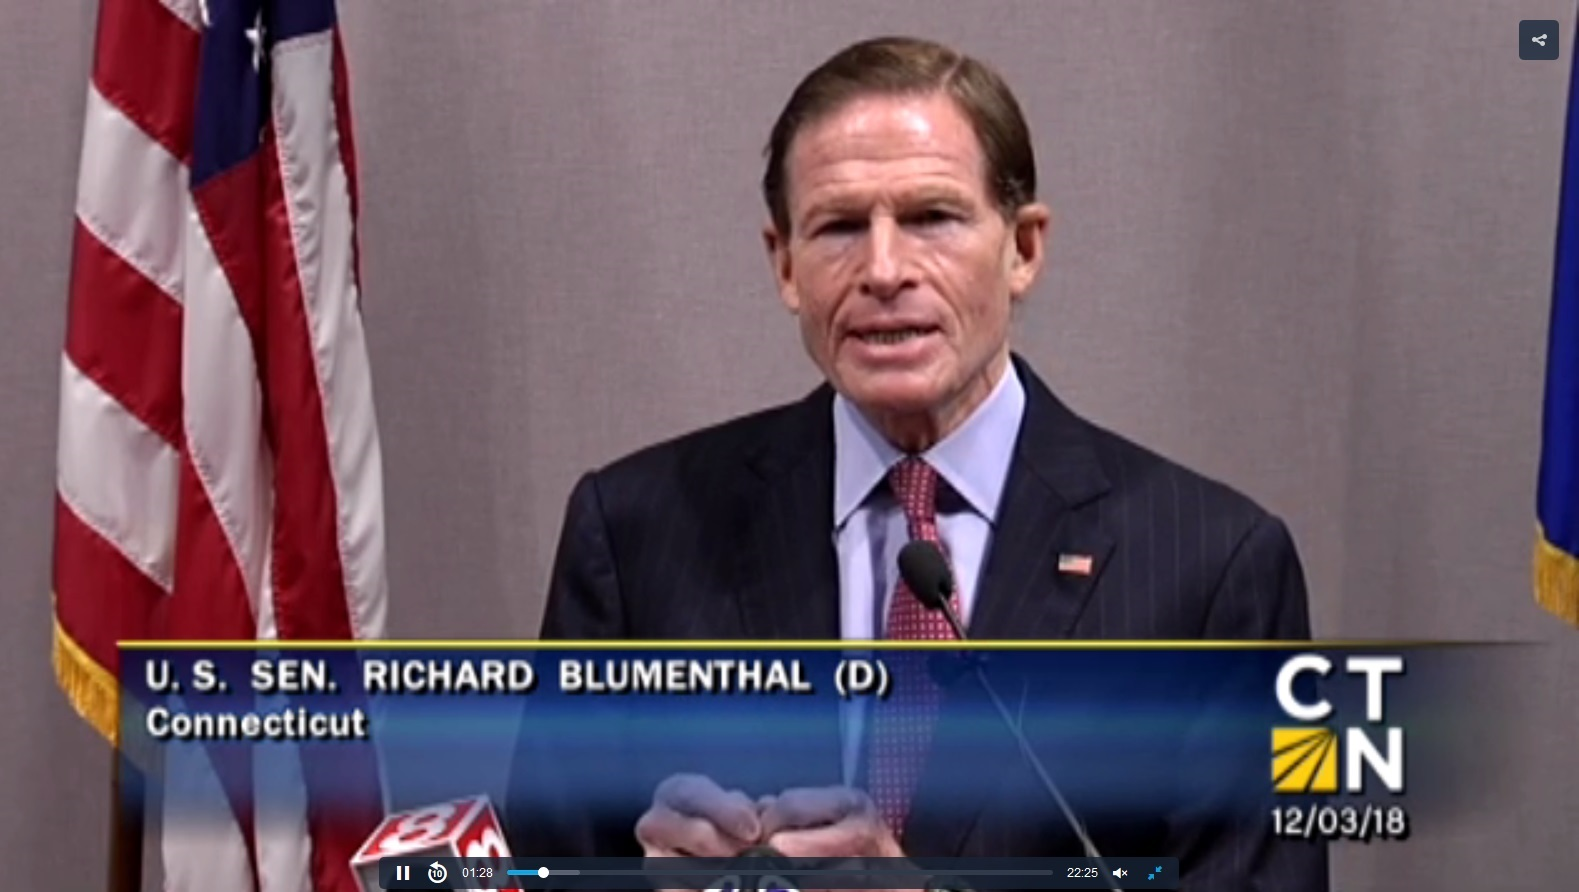 Blumenthal Press Conference Re. 5G – Video and Levitt Remarks, Smombie Gate | 5G | EMF